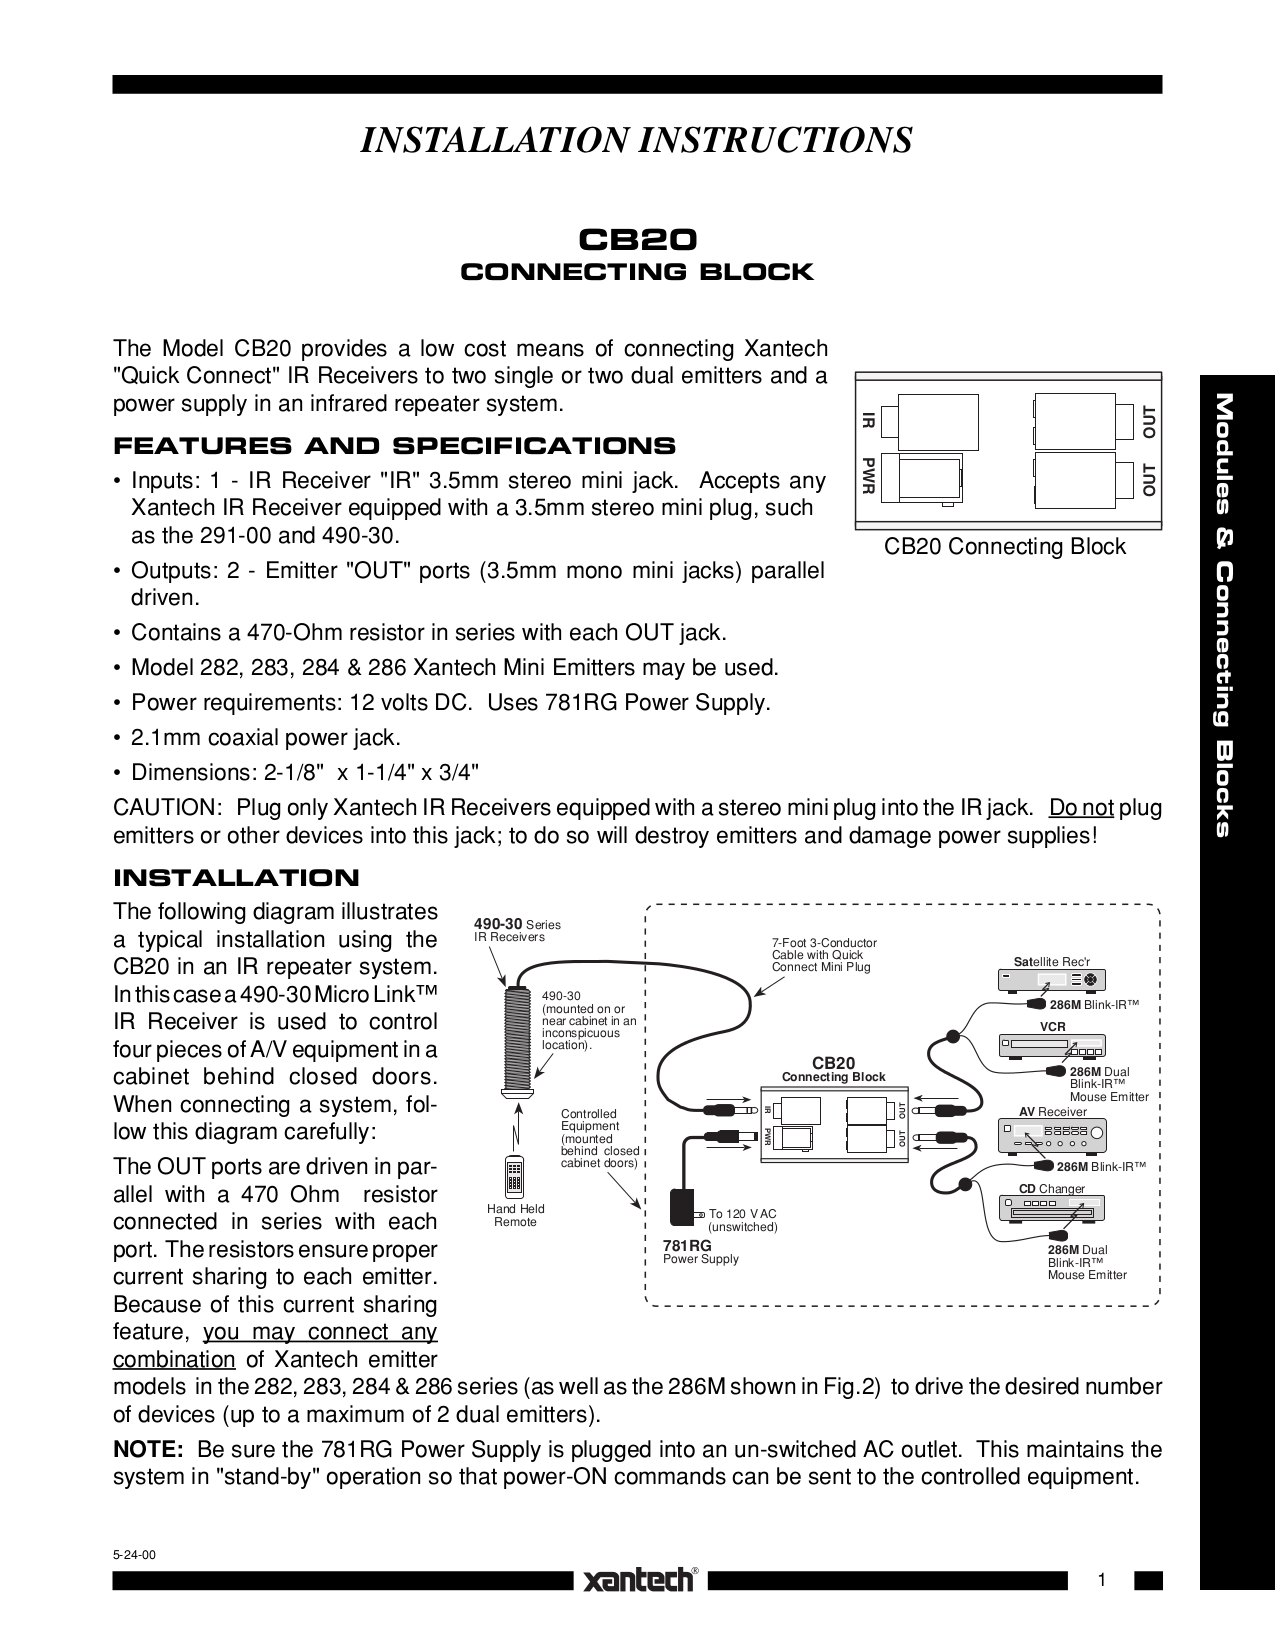 104_CB20.pdf 0 download free pdf for xantech 291 00 kit ir repeater system other xantech ir receiver wiring diagram at soozxer.org